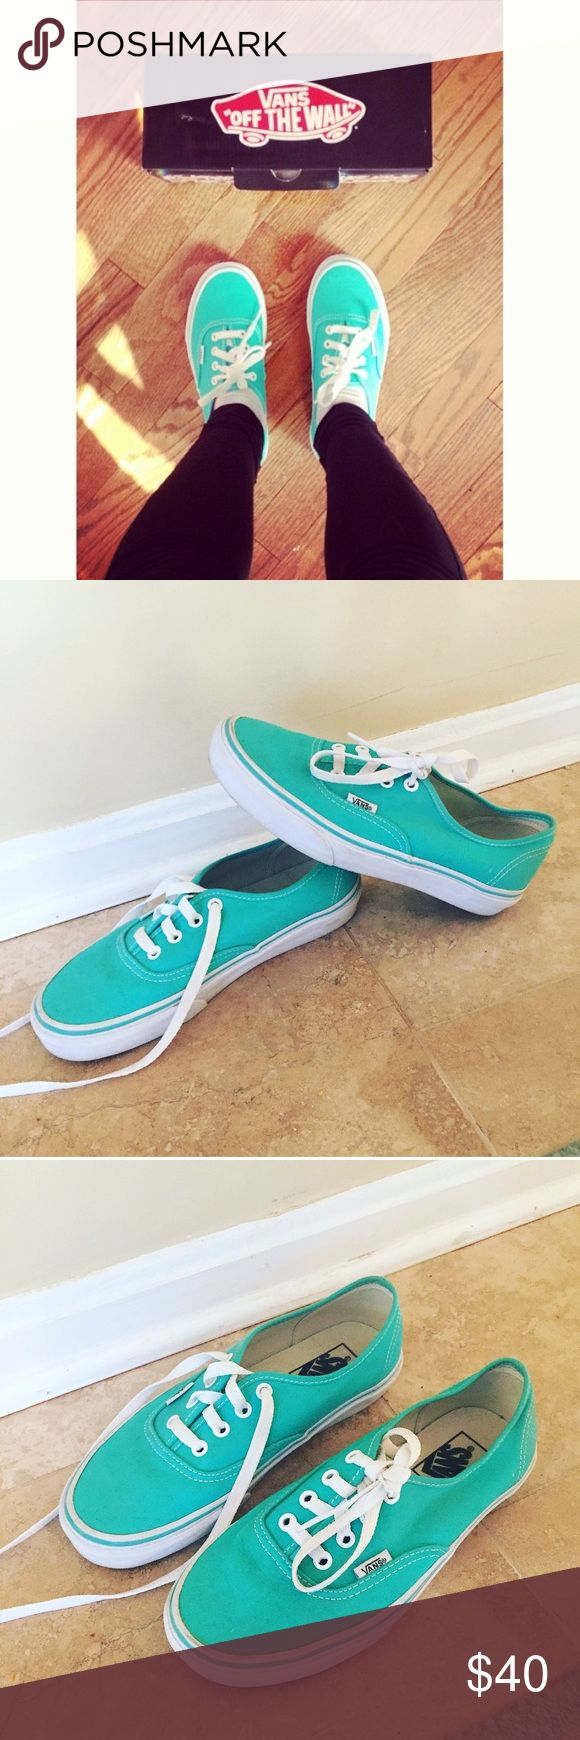 AUTHENTIC VANS - mint green Size 7! Worn ONCE. Great condition and gorgeous color! Vans Shoes Sneakers